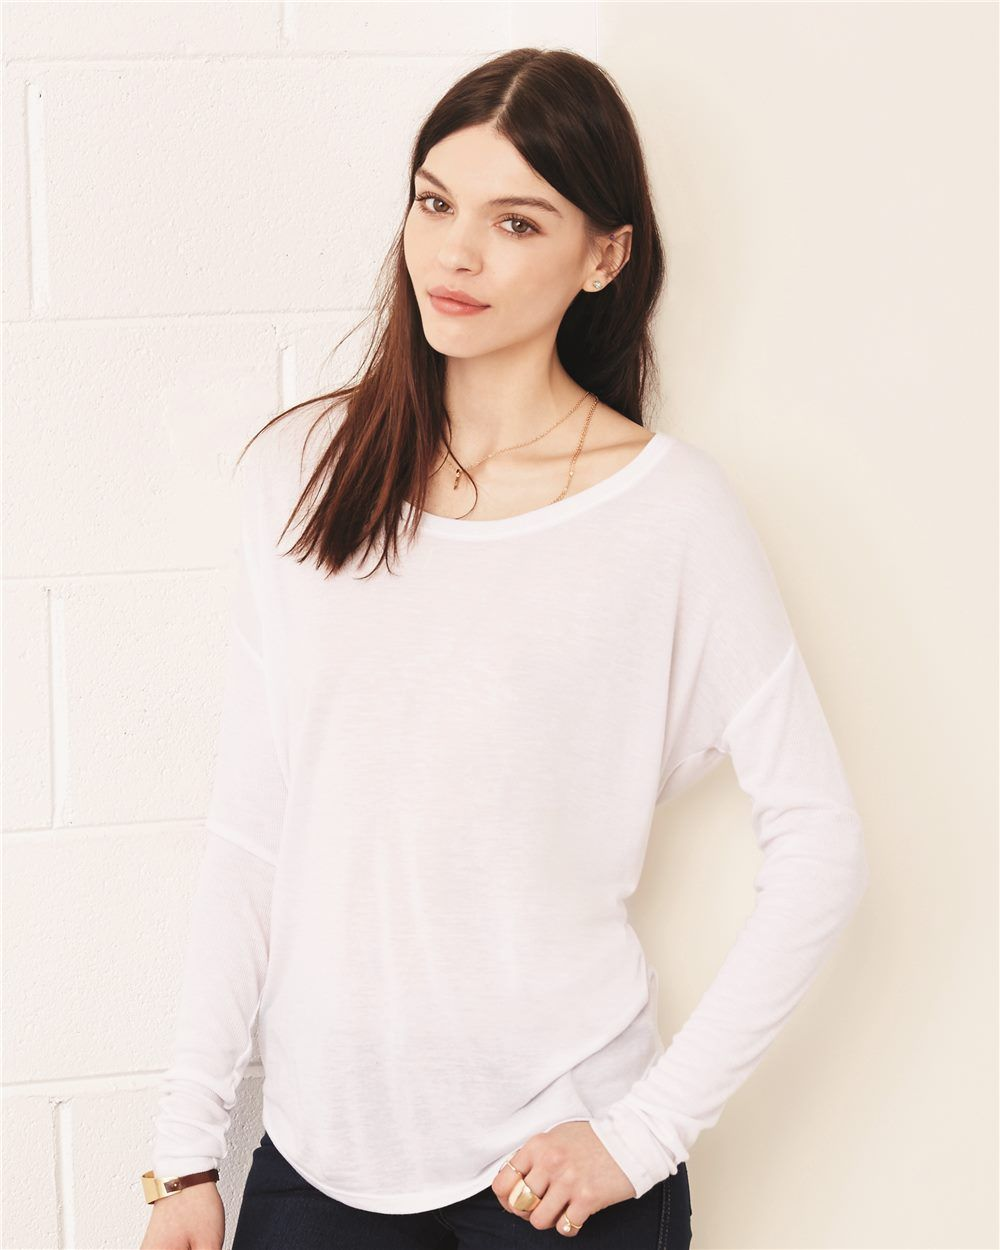 36f05fe8 Bella + Canvas 8852 - Women's Flowy Long Sleeve Tee with 2x1 Sleeves -  Wholesale and Bulk Pricing Available